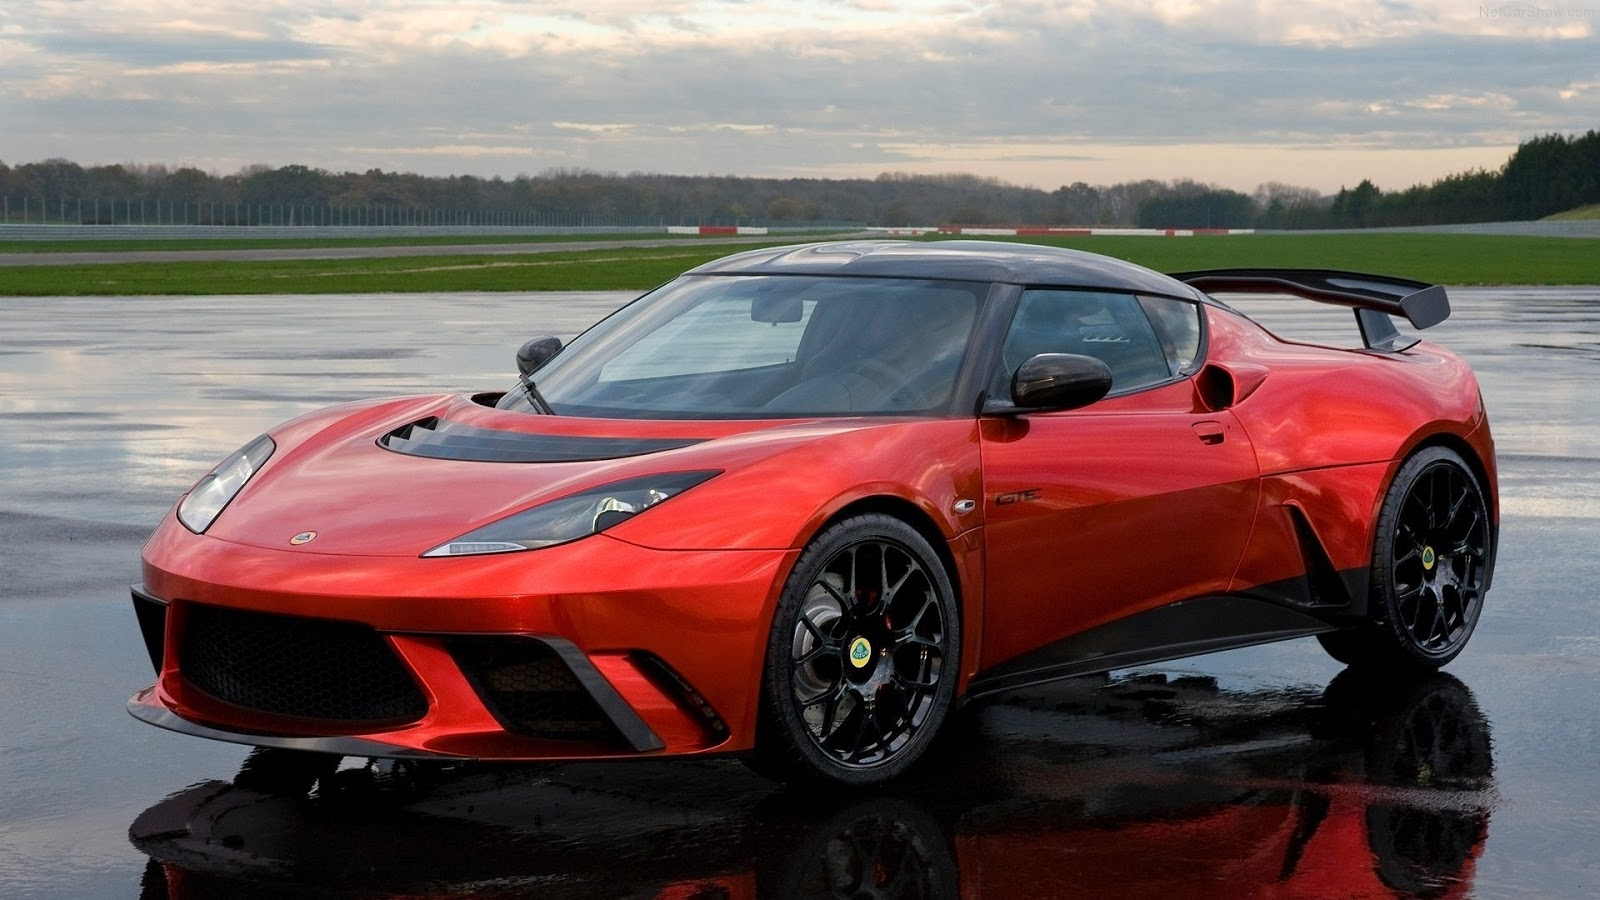 wallpapers of beautiful cars lotus evora. Black Bedroom Furniture Sets. Home Design Ideas